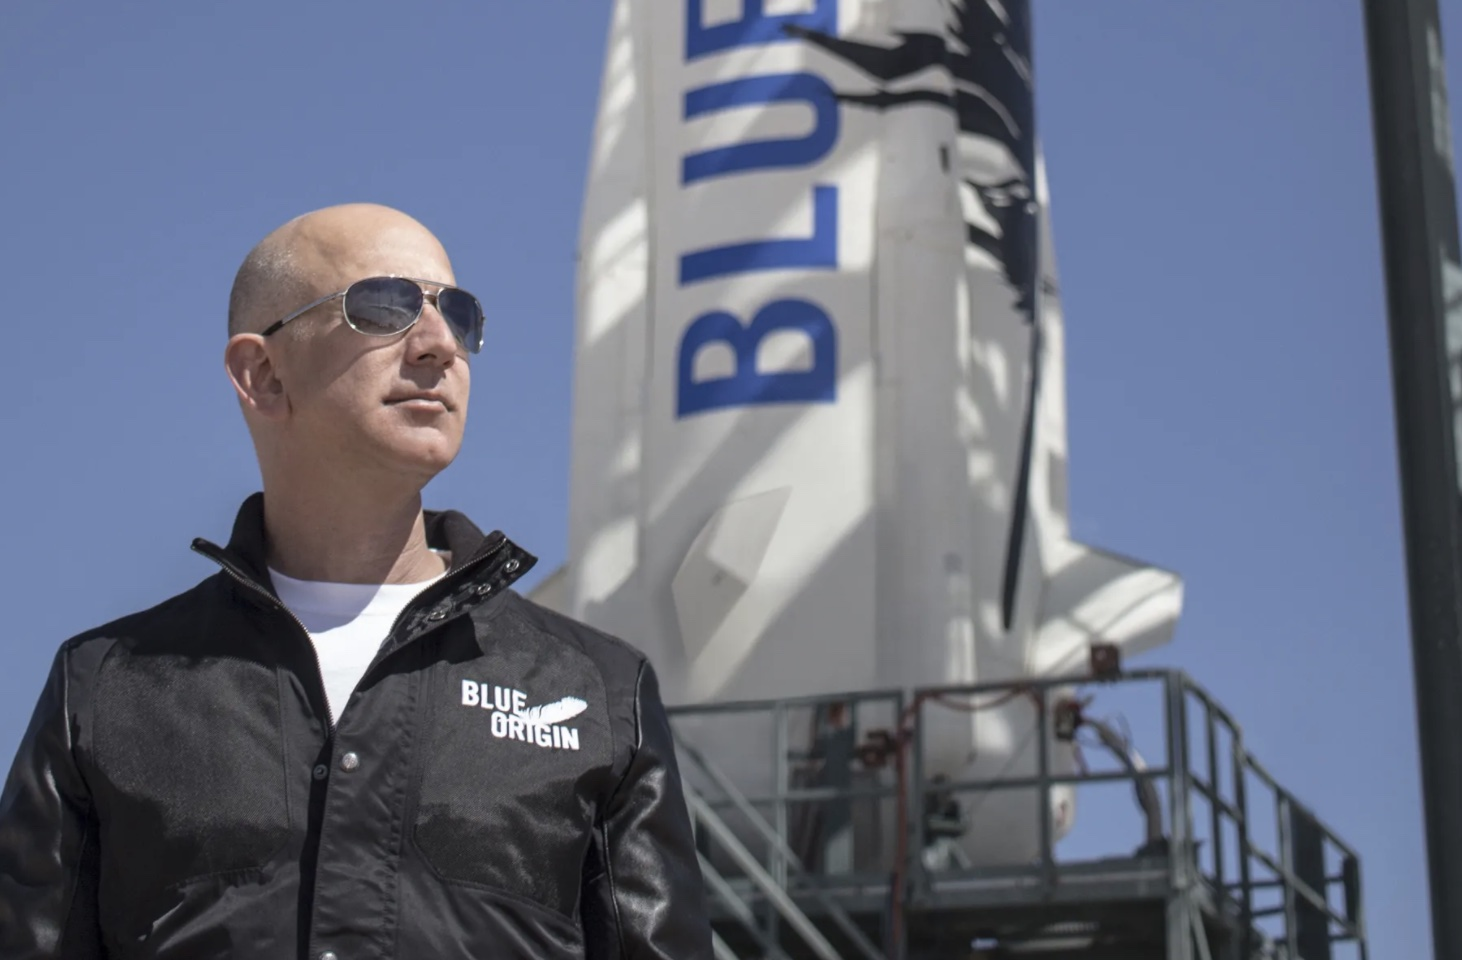 Jeff Bezos, founder of Blue Origin, at New Shepard's West Texas launch facility before the rocket's maiden voyage, April 24, 2015. — BLUE ORIGIN/AFP pic